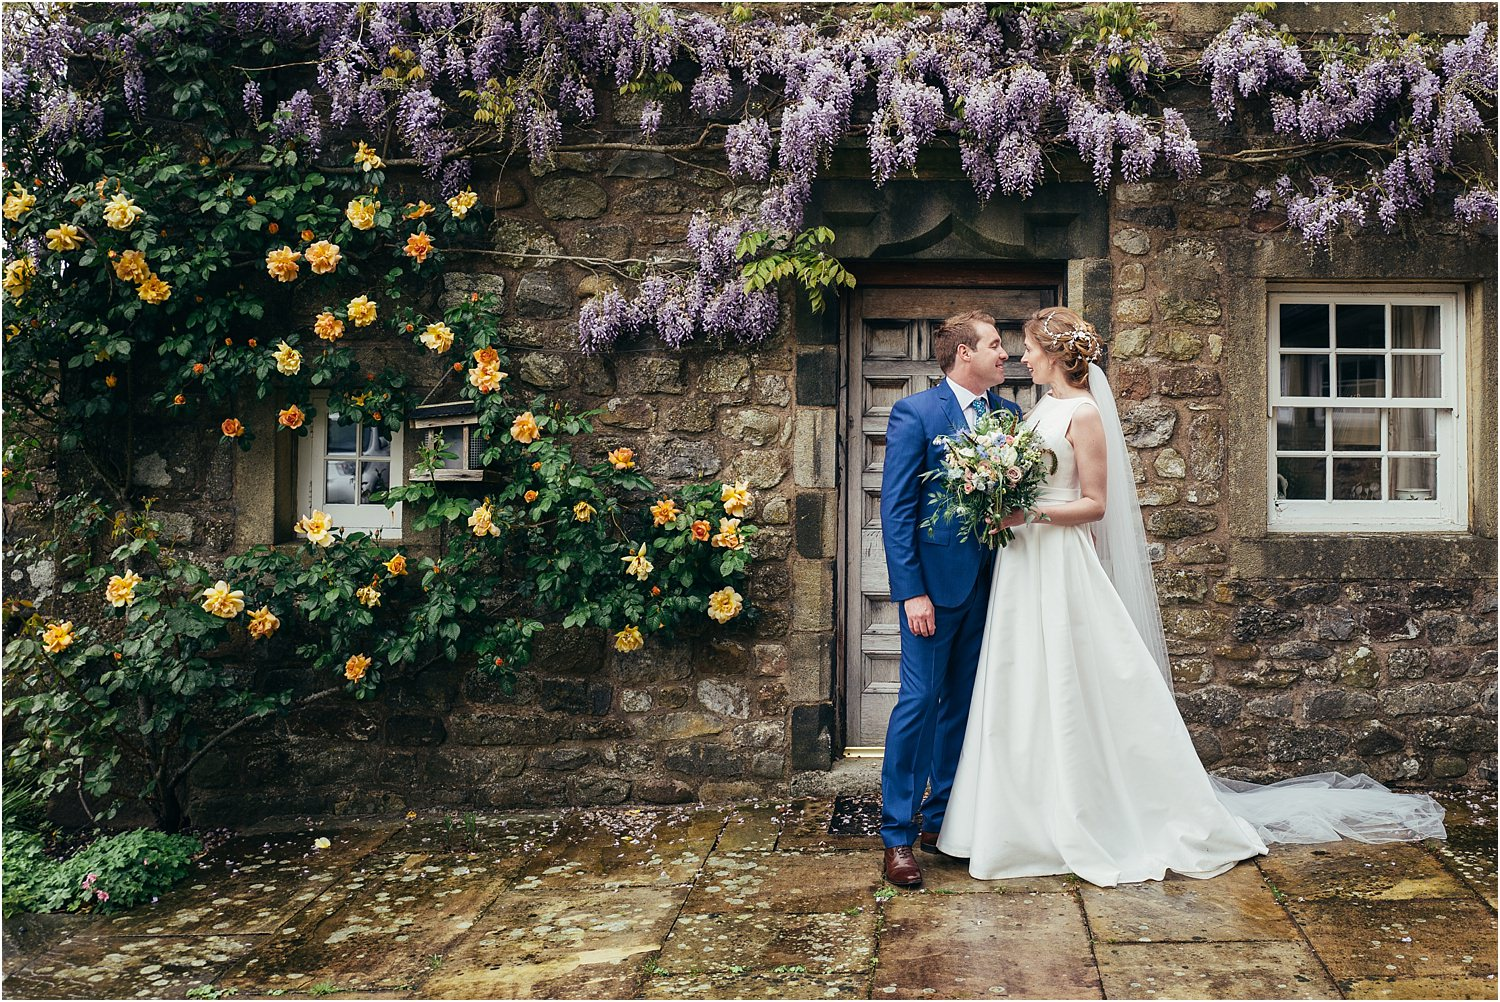 Bride and groom in front of the wisteria at the front door of The Inn at Whitewell